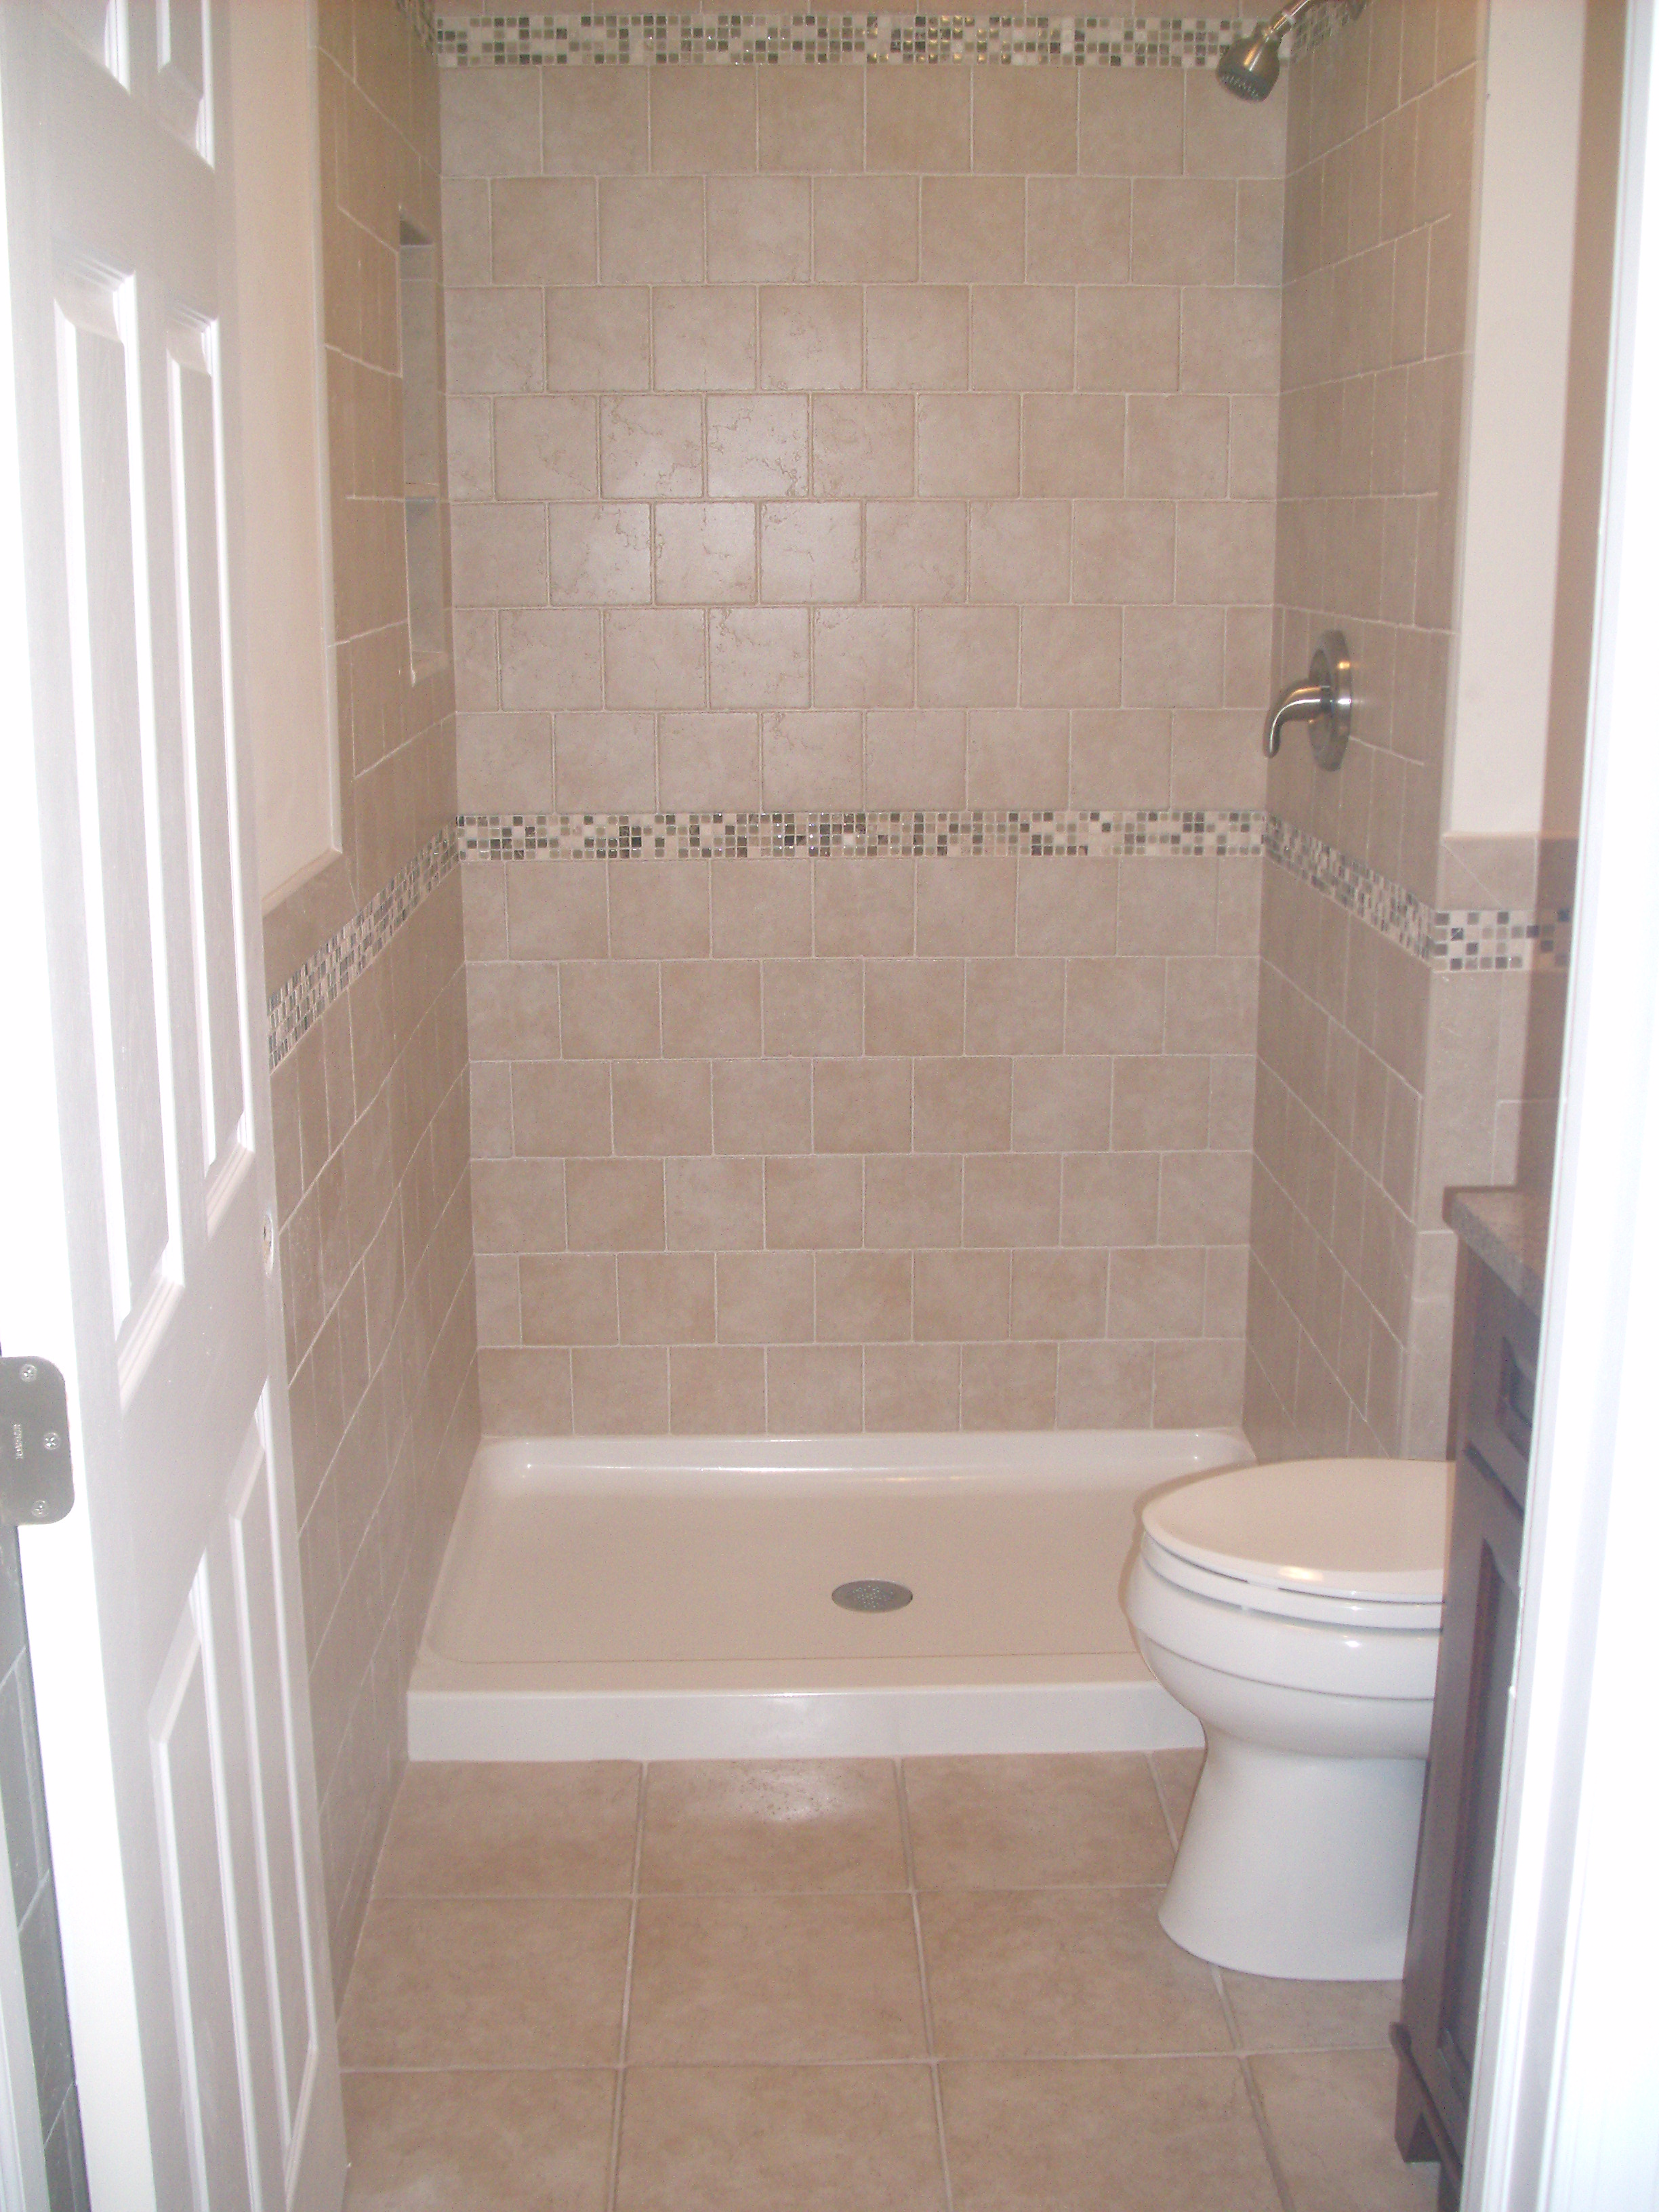 installation threshold bathtub gallery job roseavelt mall bathe walk install feild bathroom safe media shower in low bathtubs